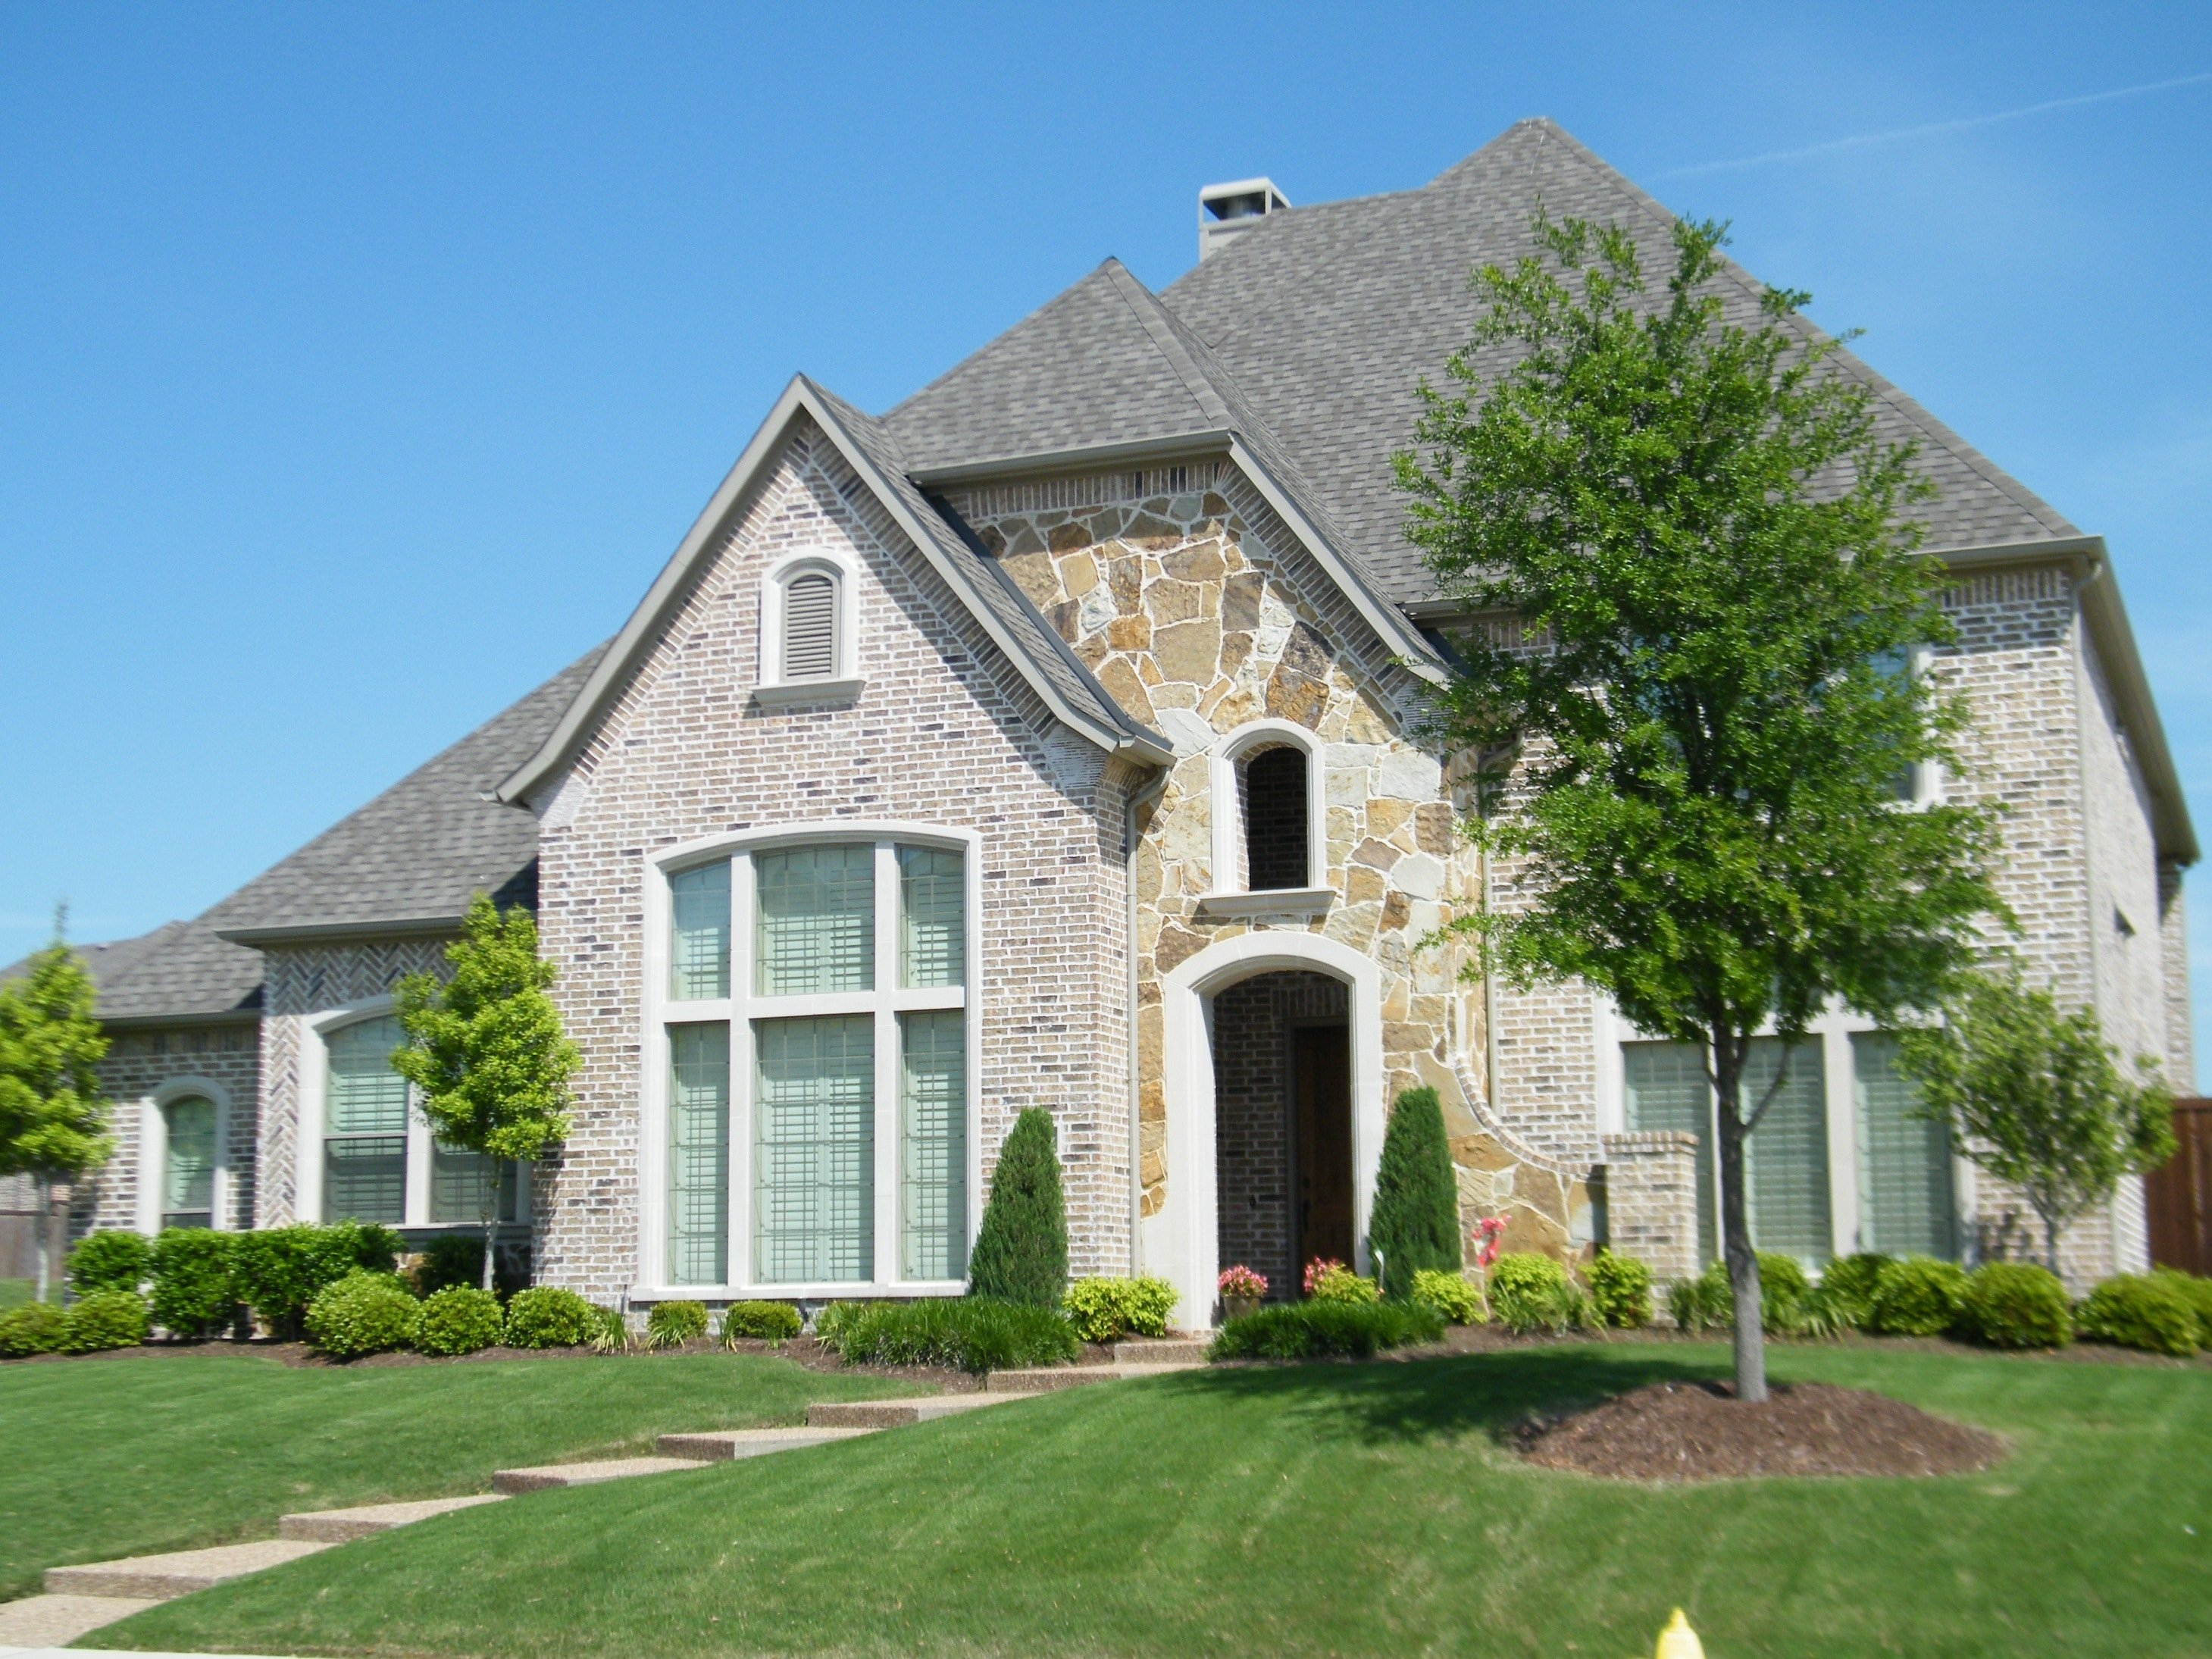 Find Your Dream Home how to find your dream home in oklahoma - realtybiznews: real